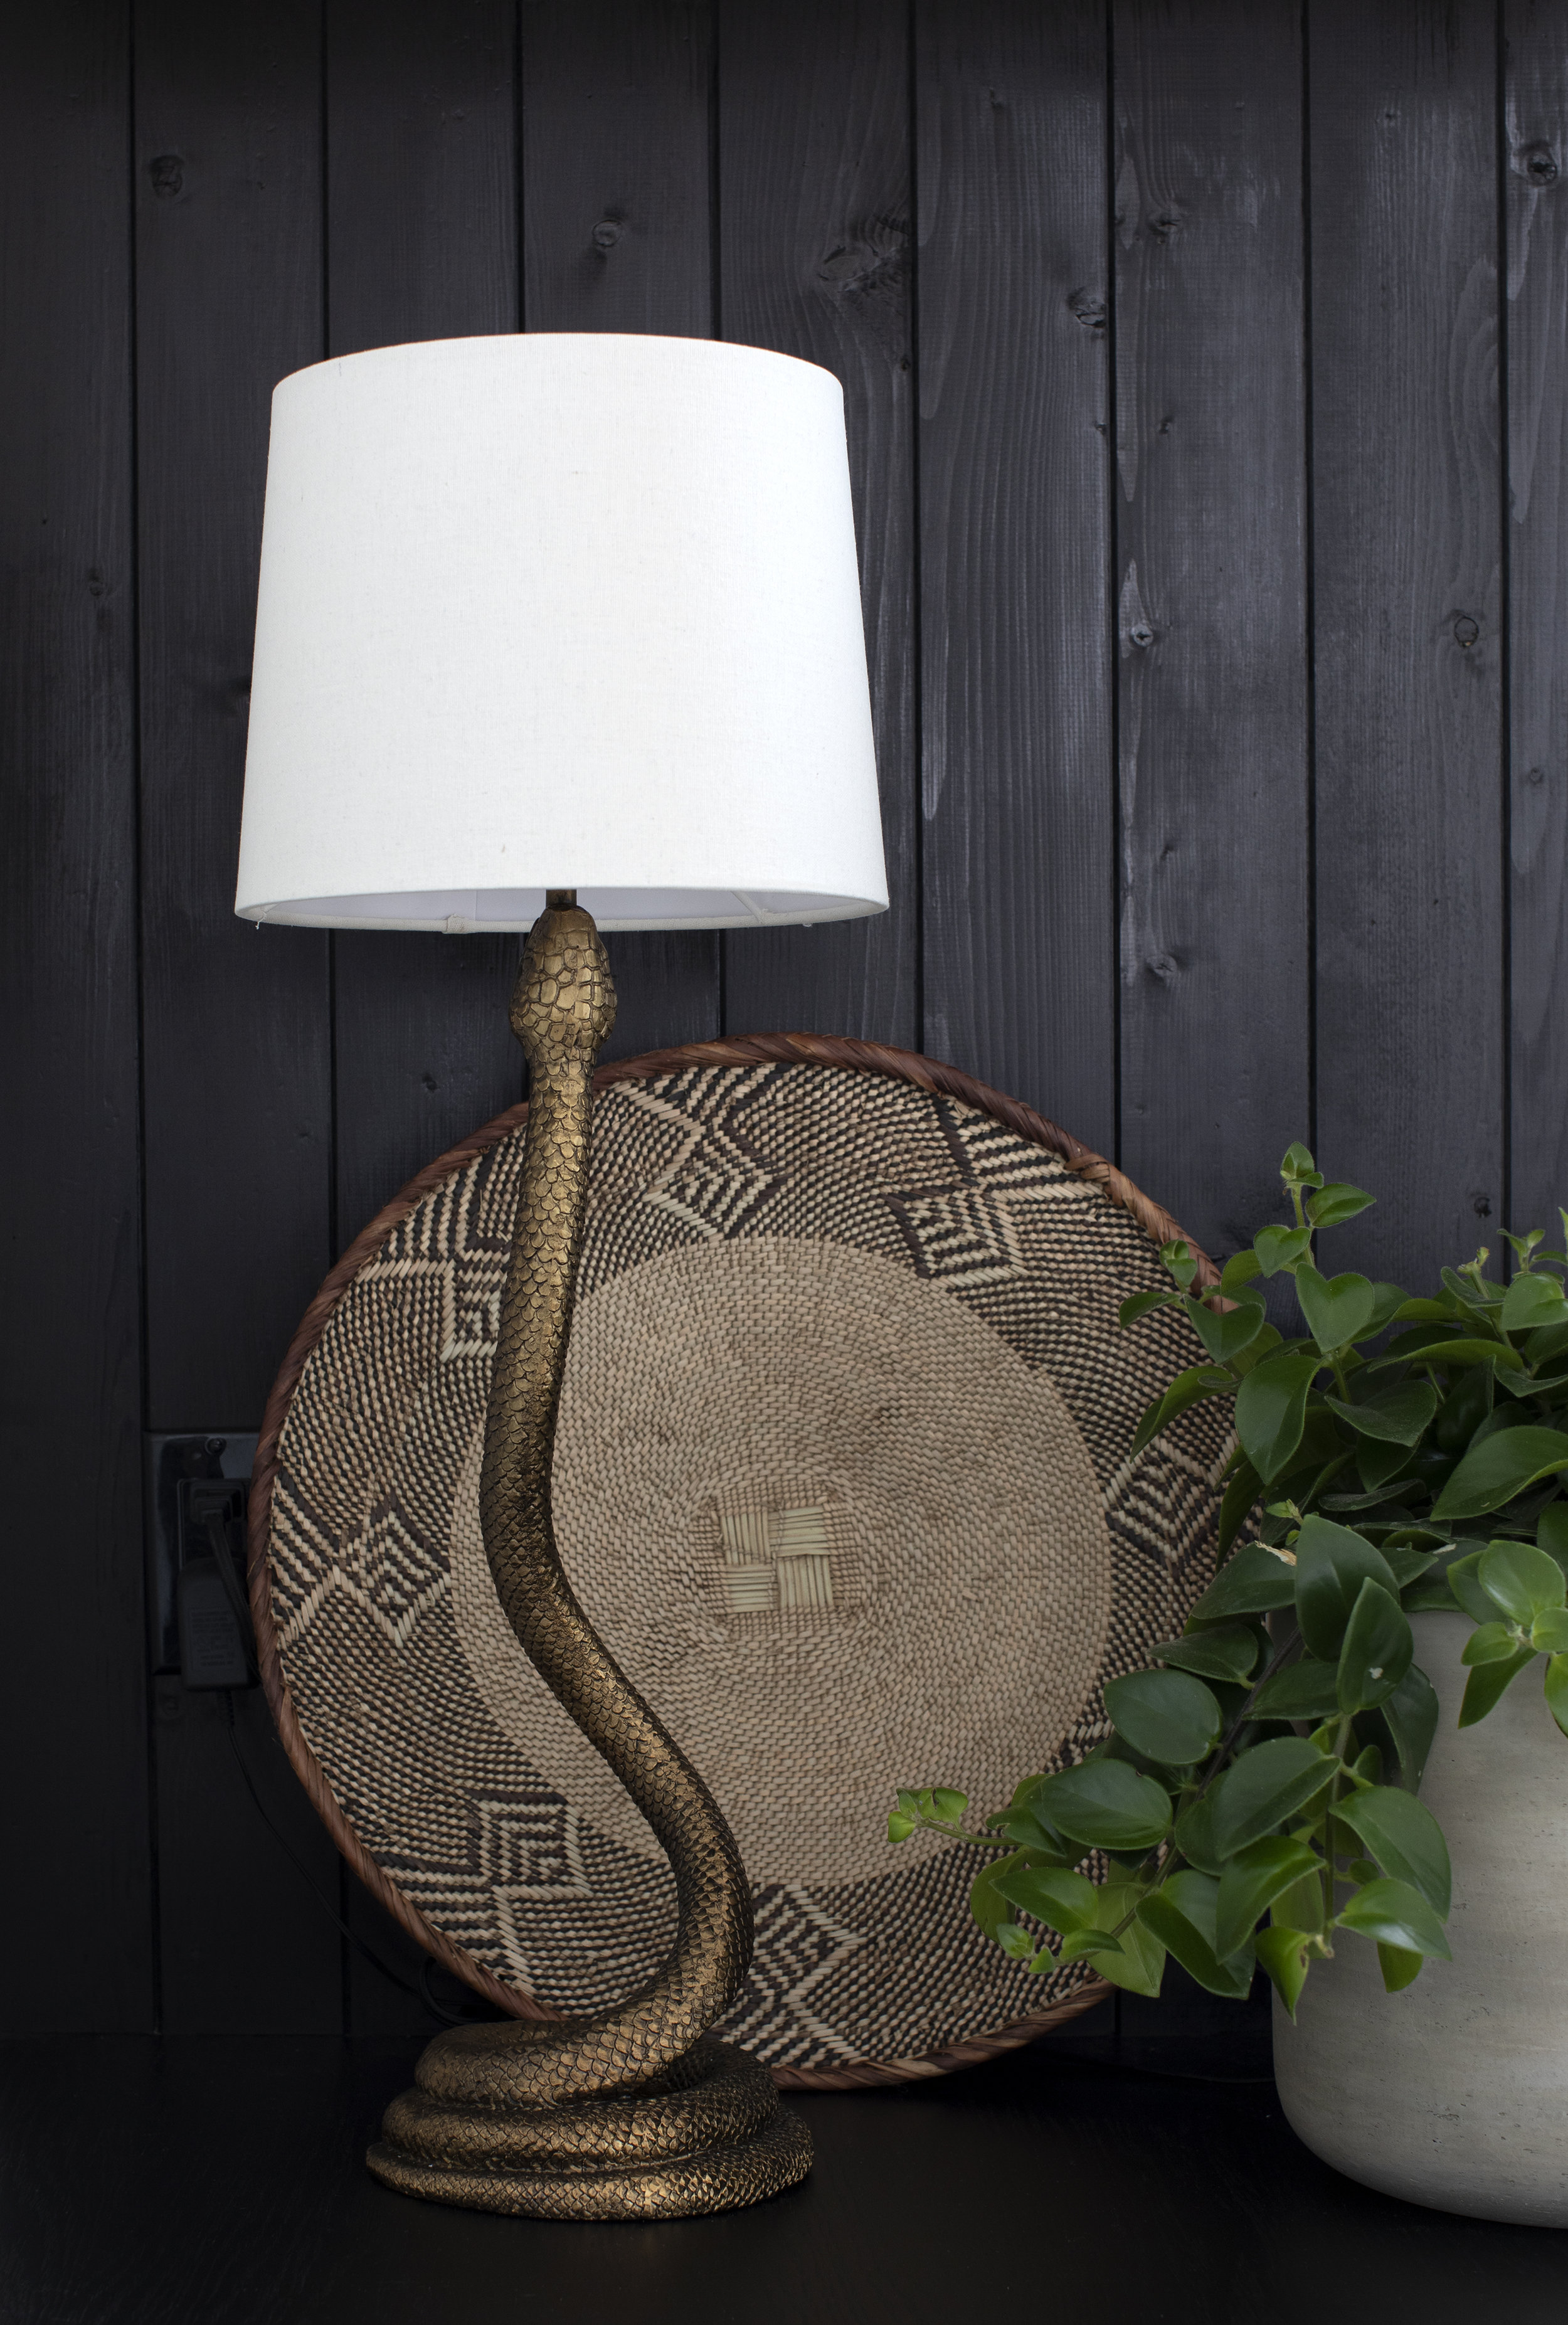 A beautiful white lamp with a brass snake base.